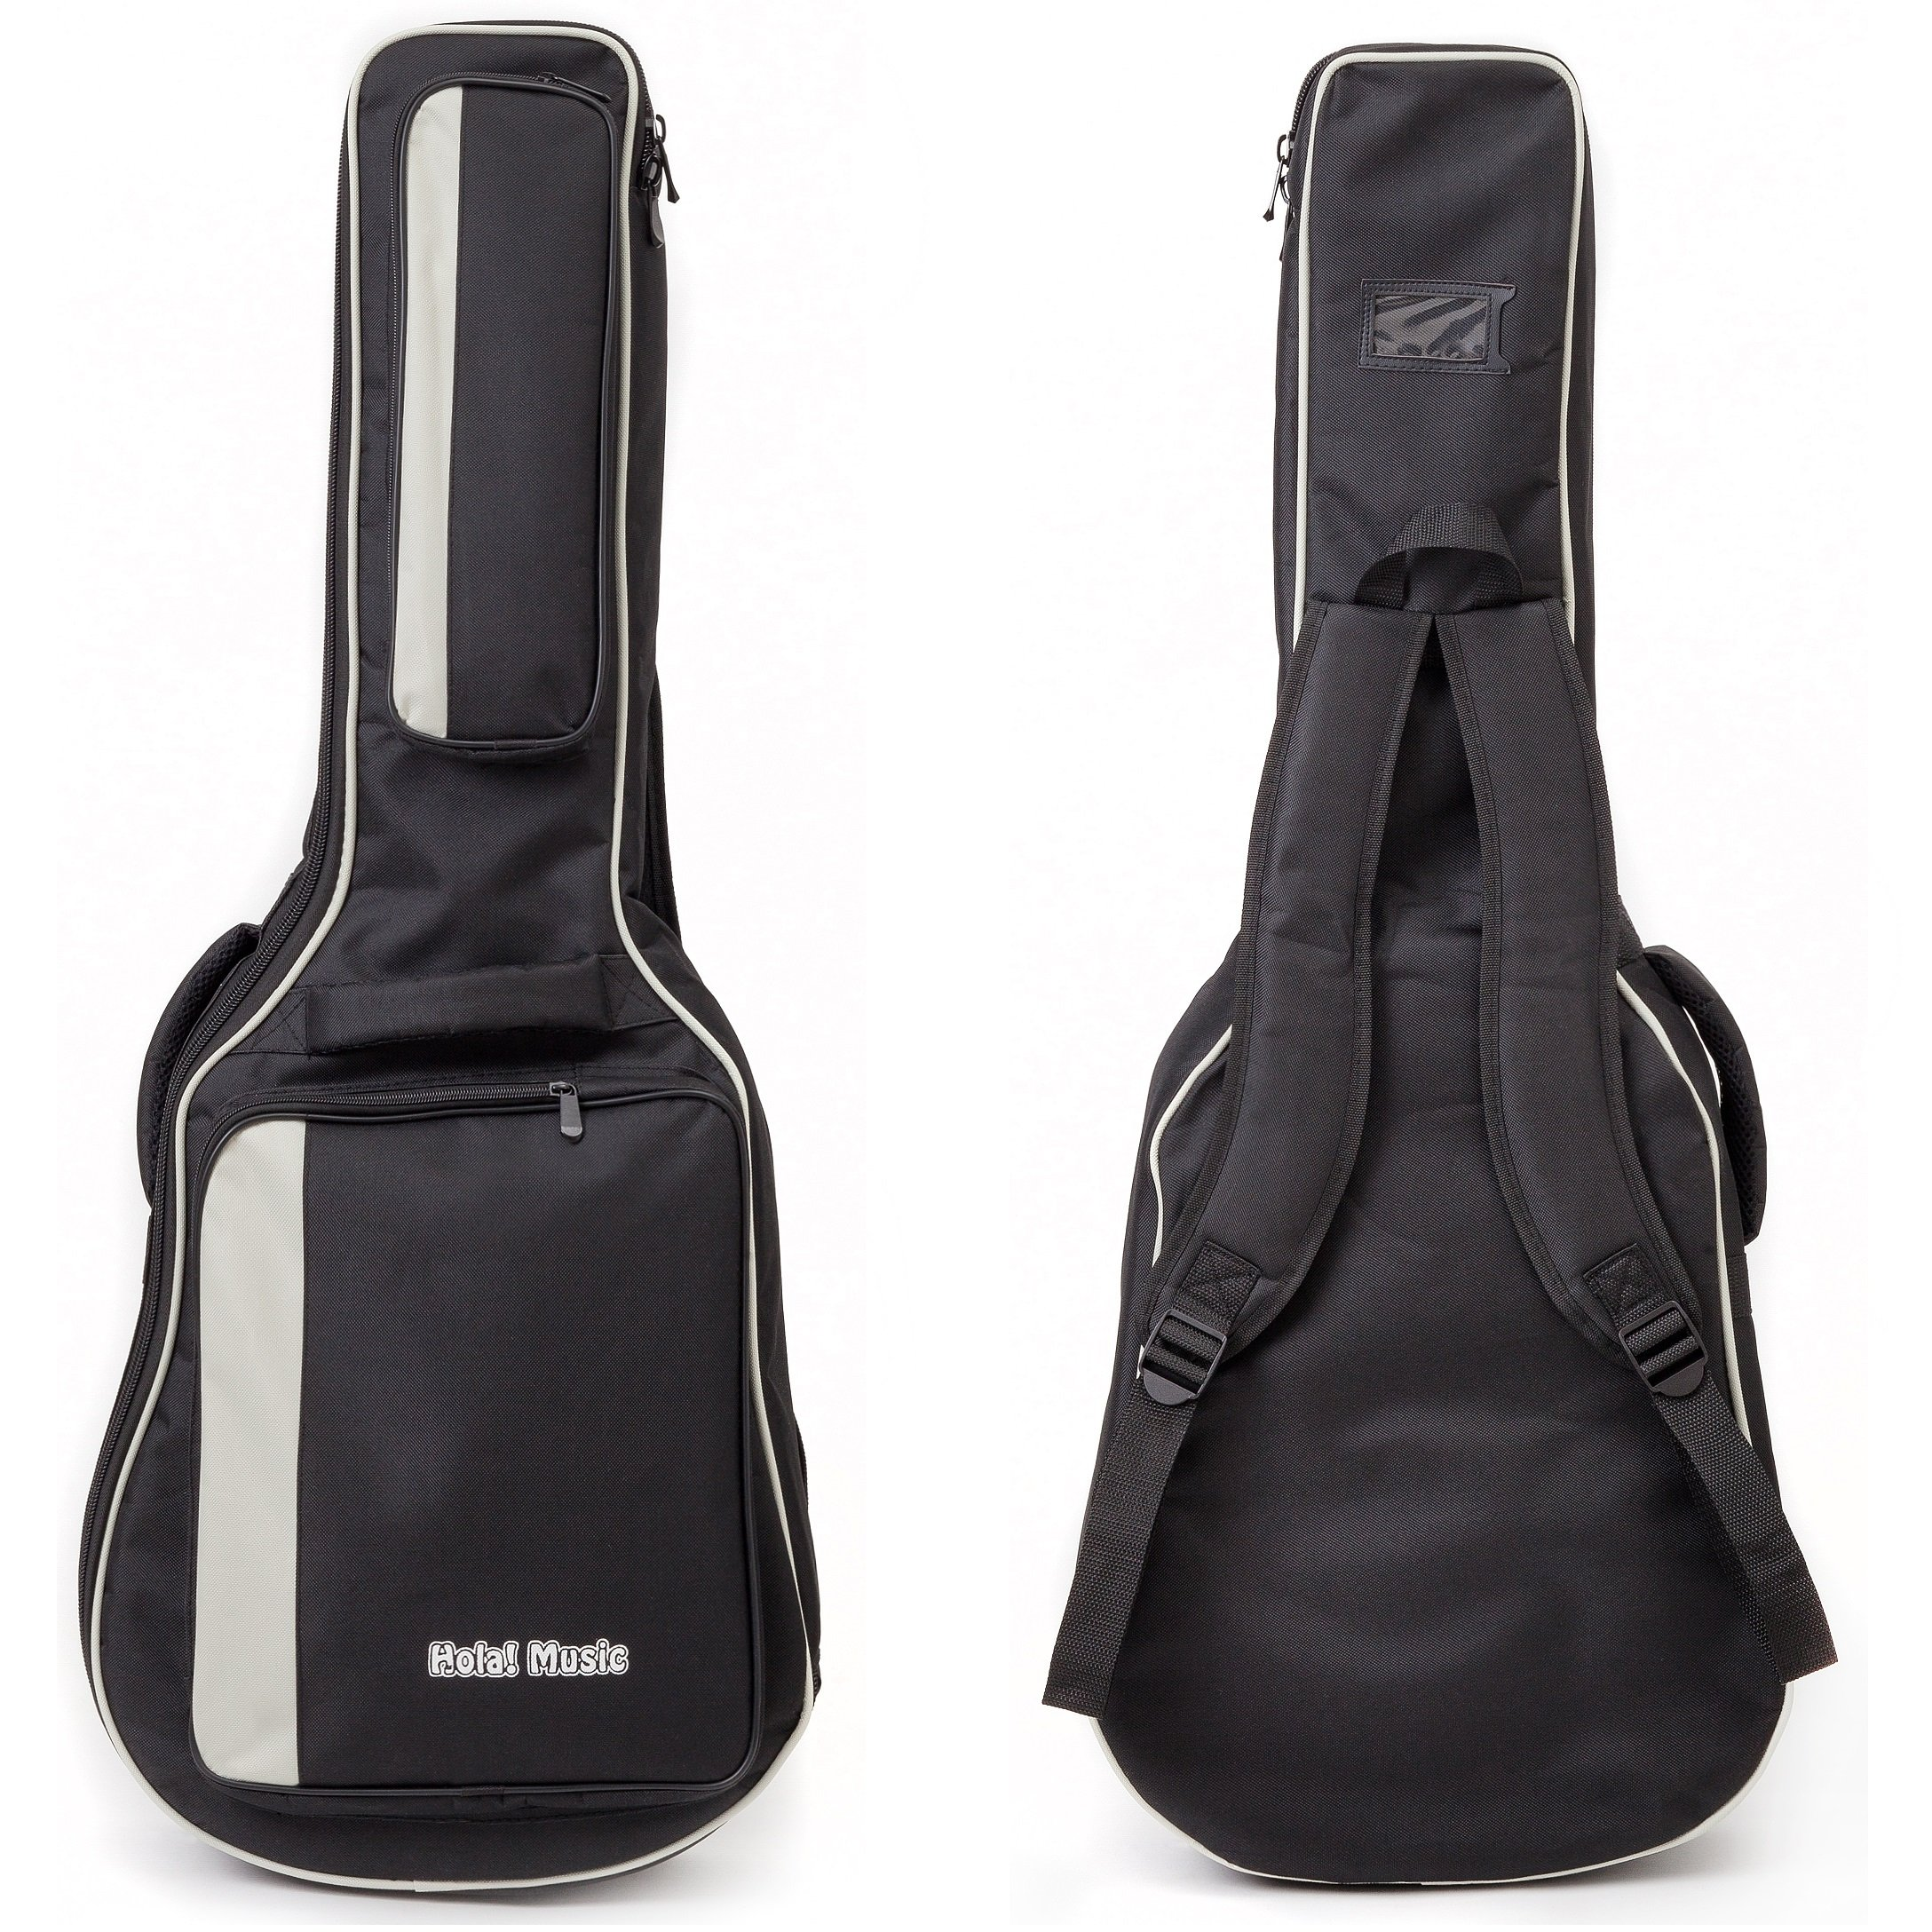 c7b4667177 Acoustic and Classical Guitars Gig Bag 3/4 Size (36 inch) by Hola! Music,  Deluxe Series with 15mm Padding, Black